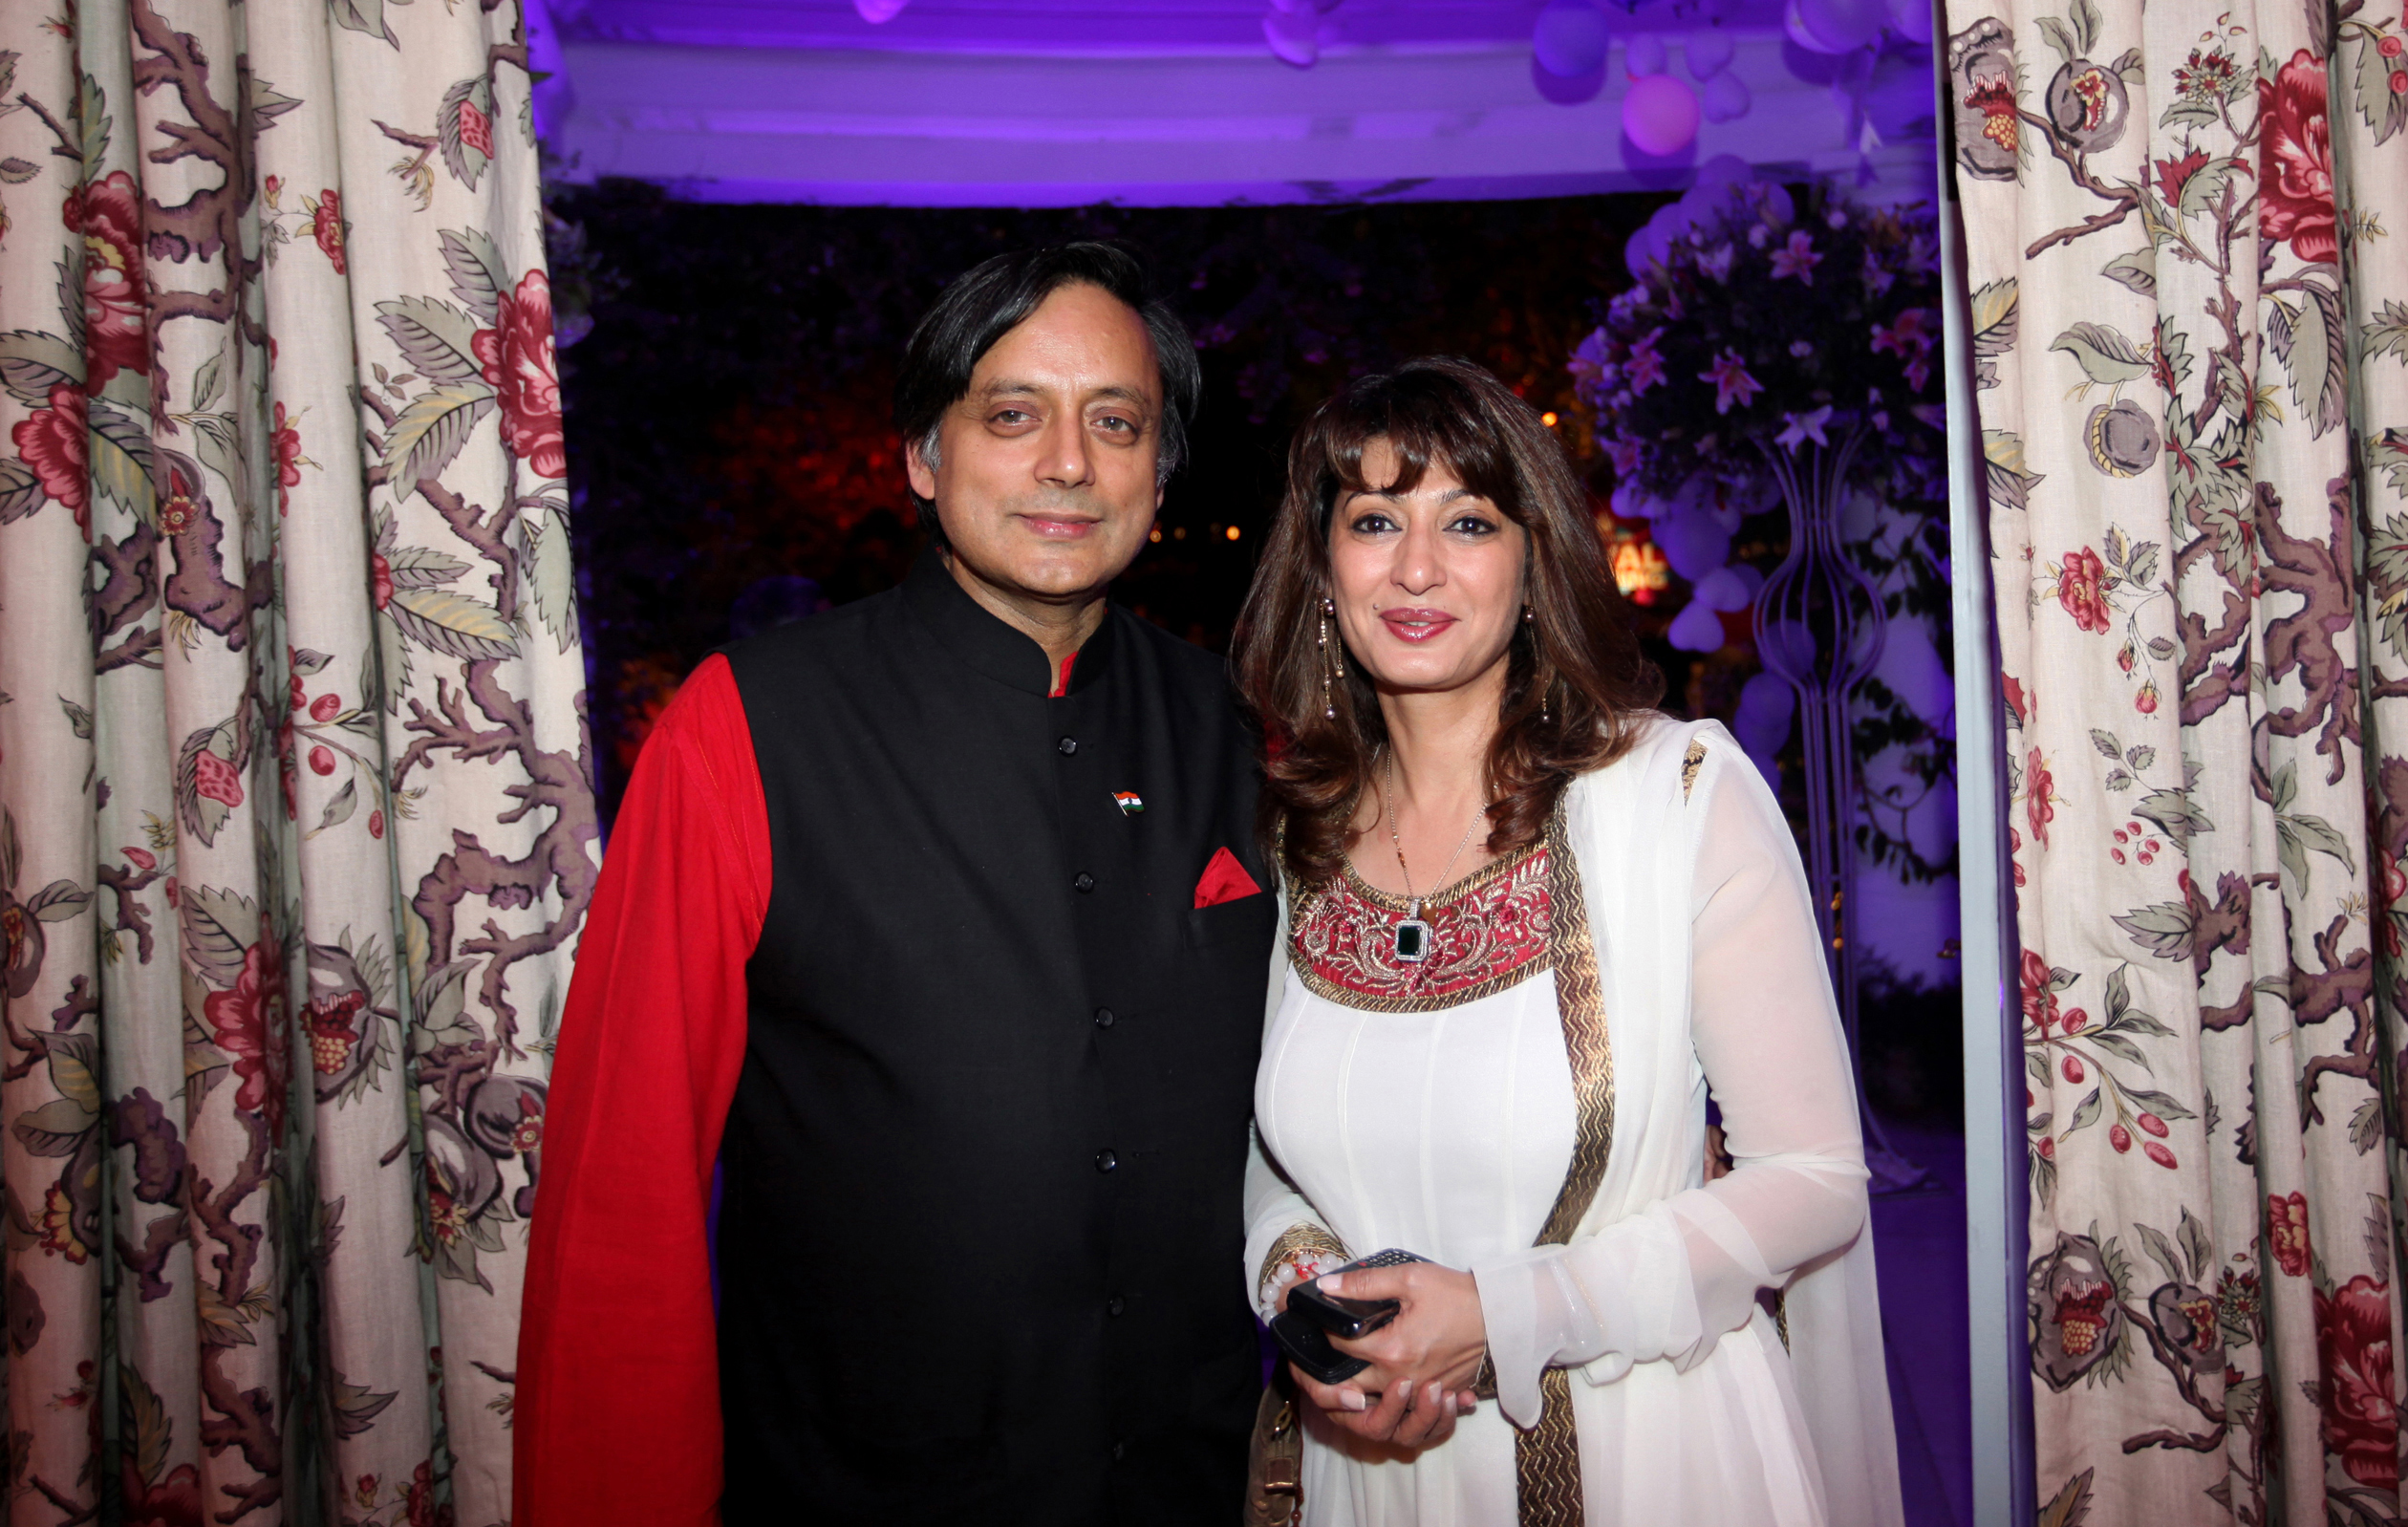 Shashi Tharoor and Sunanda at the party to celebrate the British Royal Wedding at the British High Commissioner's house in New Delhi on Friday. Express photo by Oinam Anand. 29 April 2011